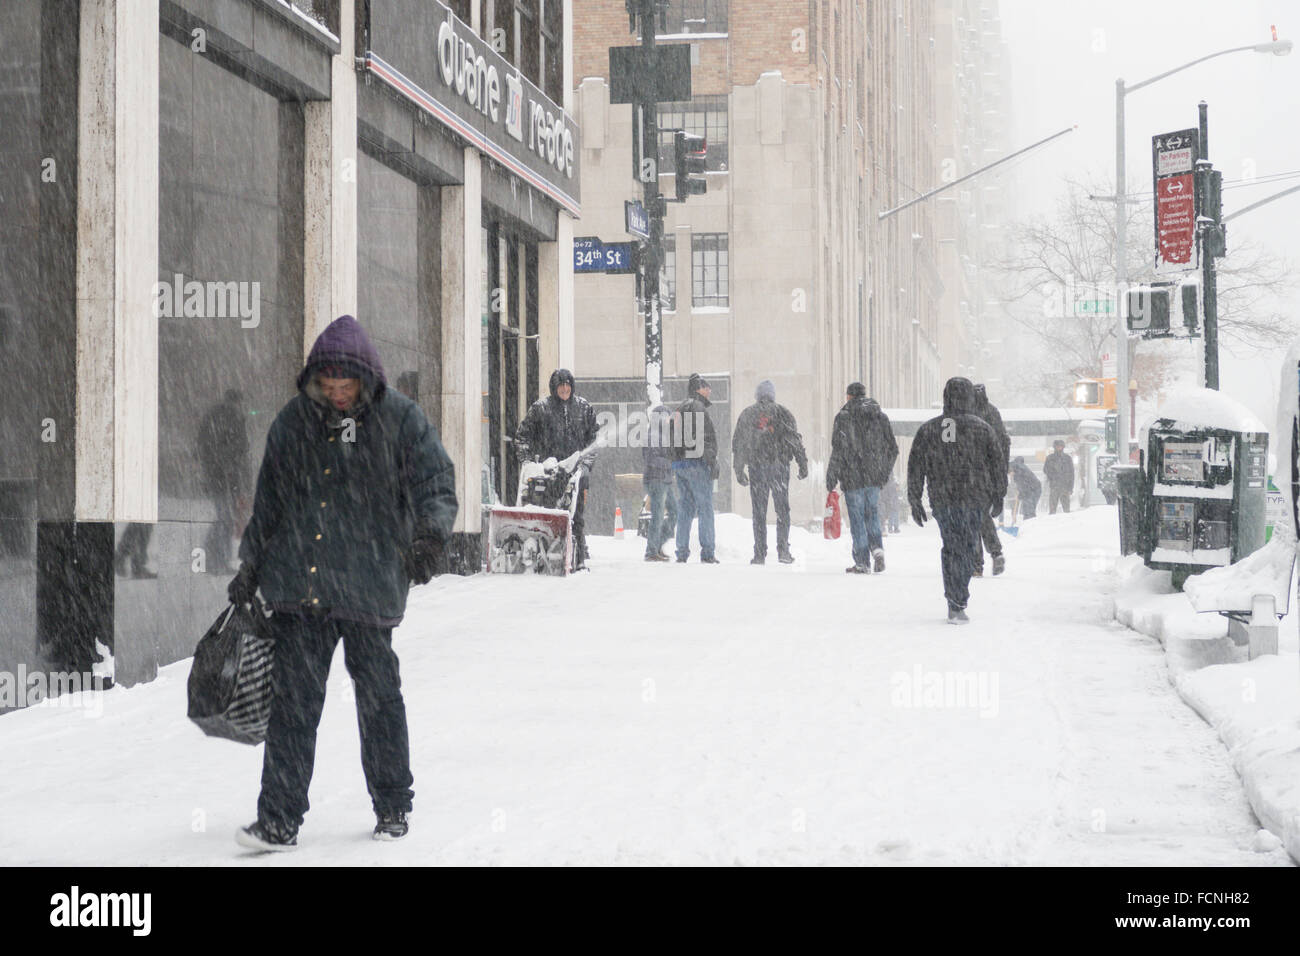 New York City, USA. 23 January 2016. Blizzard shuts down NYC. Streets and sidewalks are nearly impassable. Credit: Stock Photo